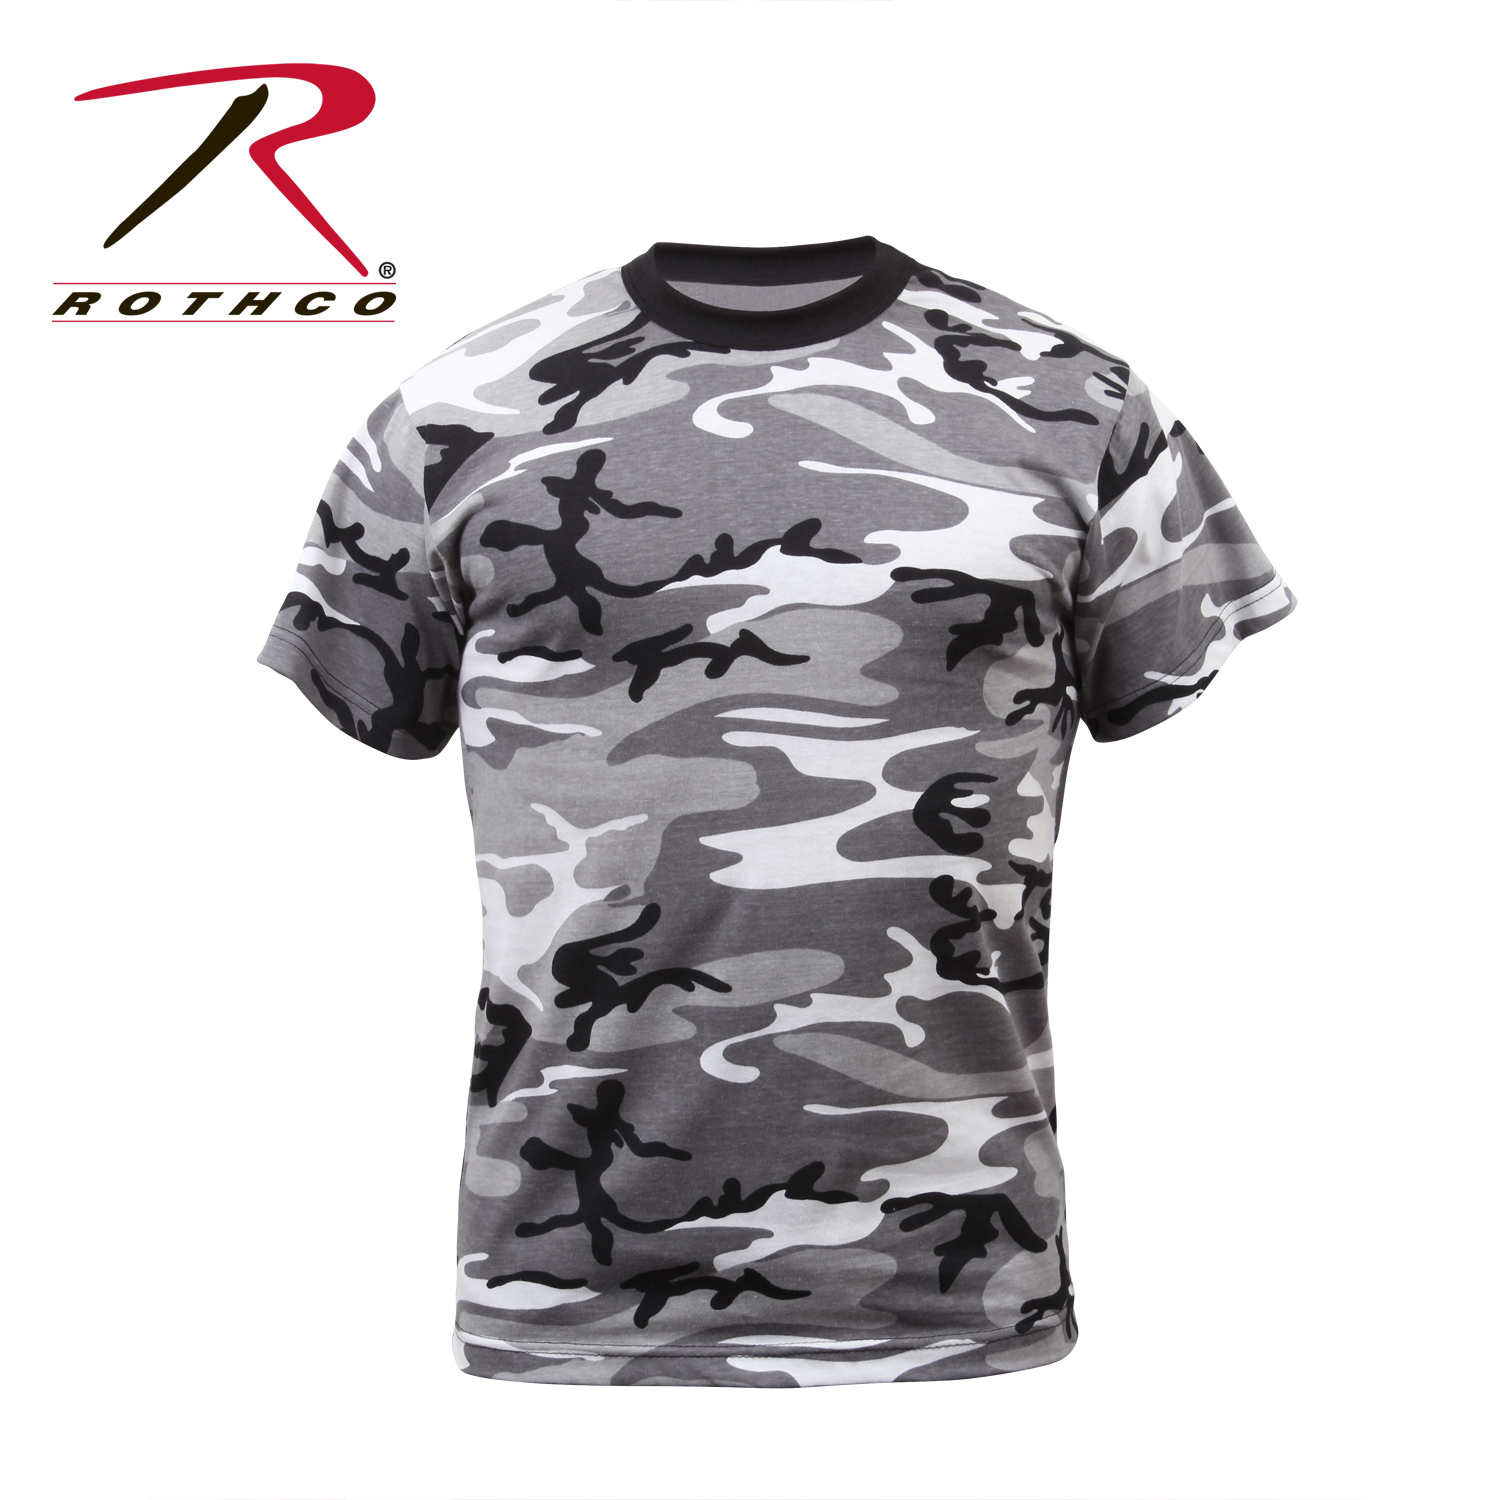 Rothco colored camo t shirts for Camouflage t shirt design